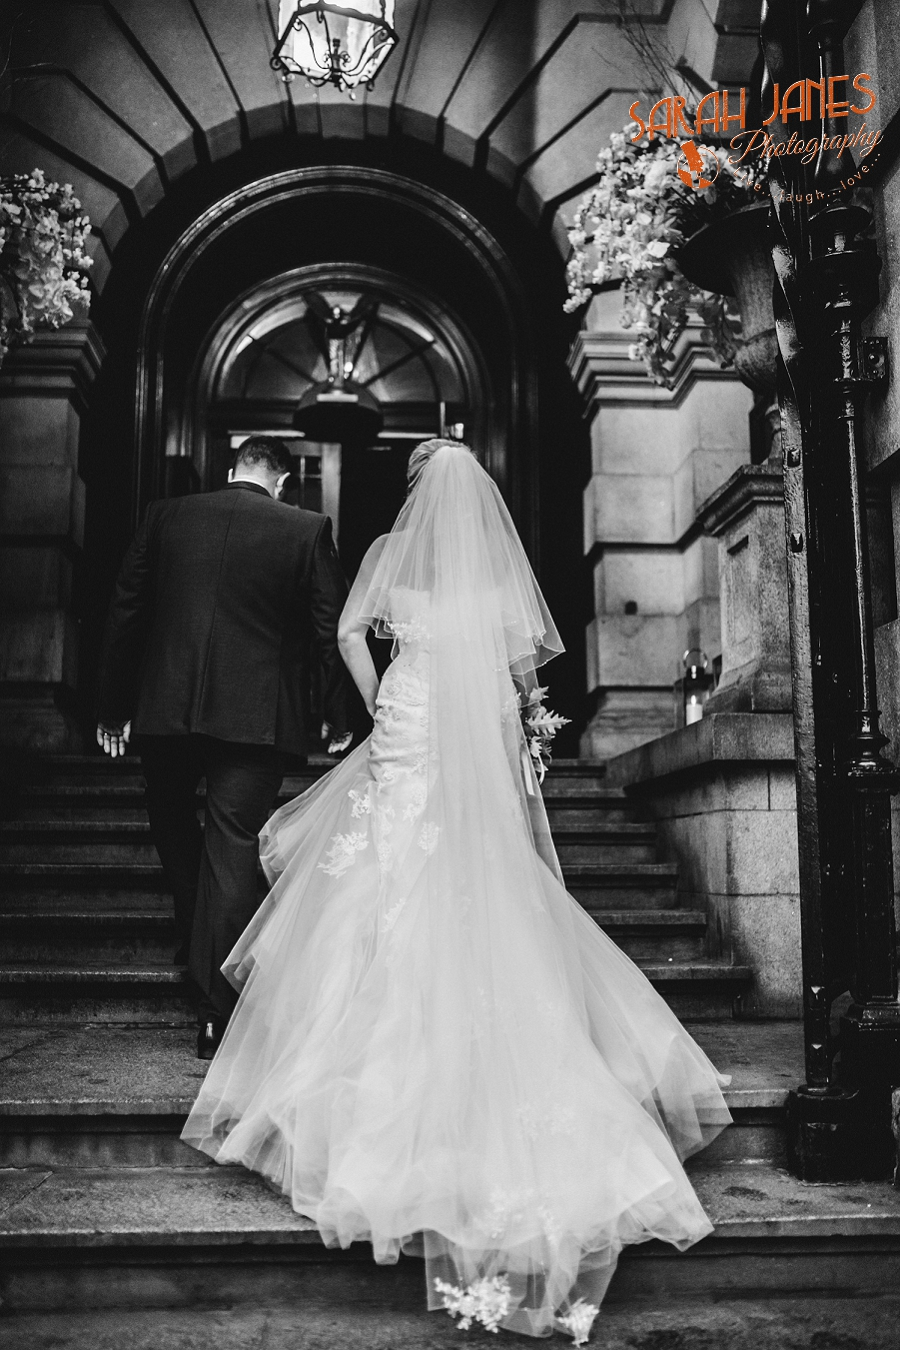 Sarah Janes Photography, Natrual wedding photography, Liverpool wedding photographer, James Street wedding photography_0032.jpg